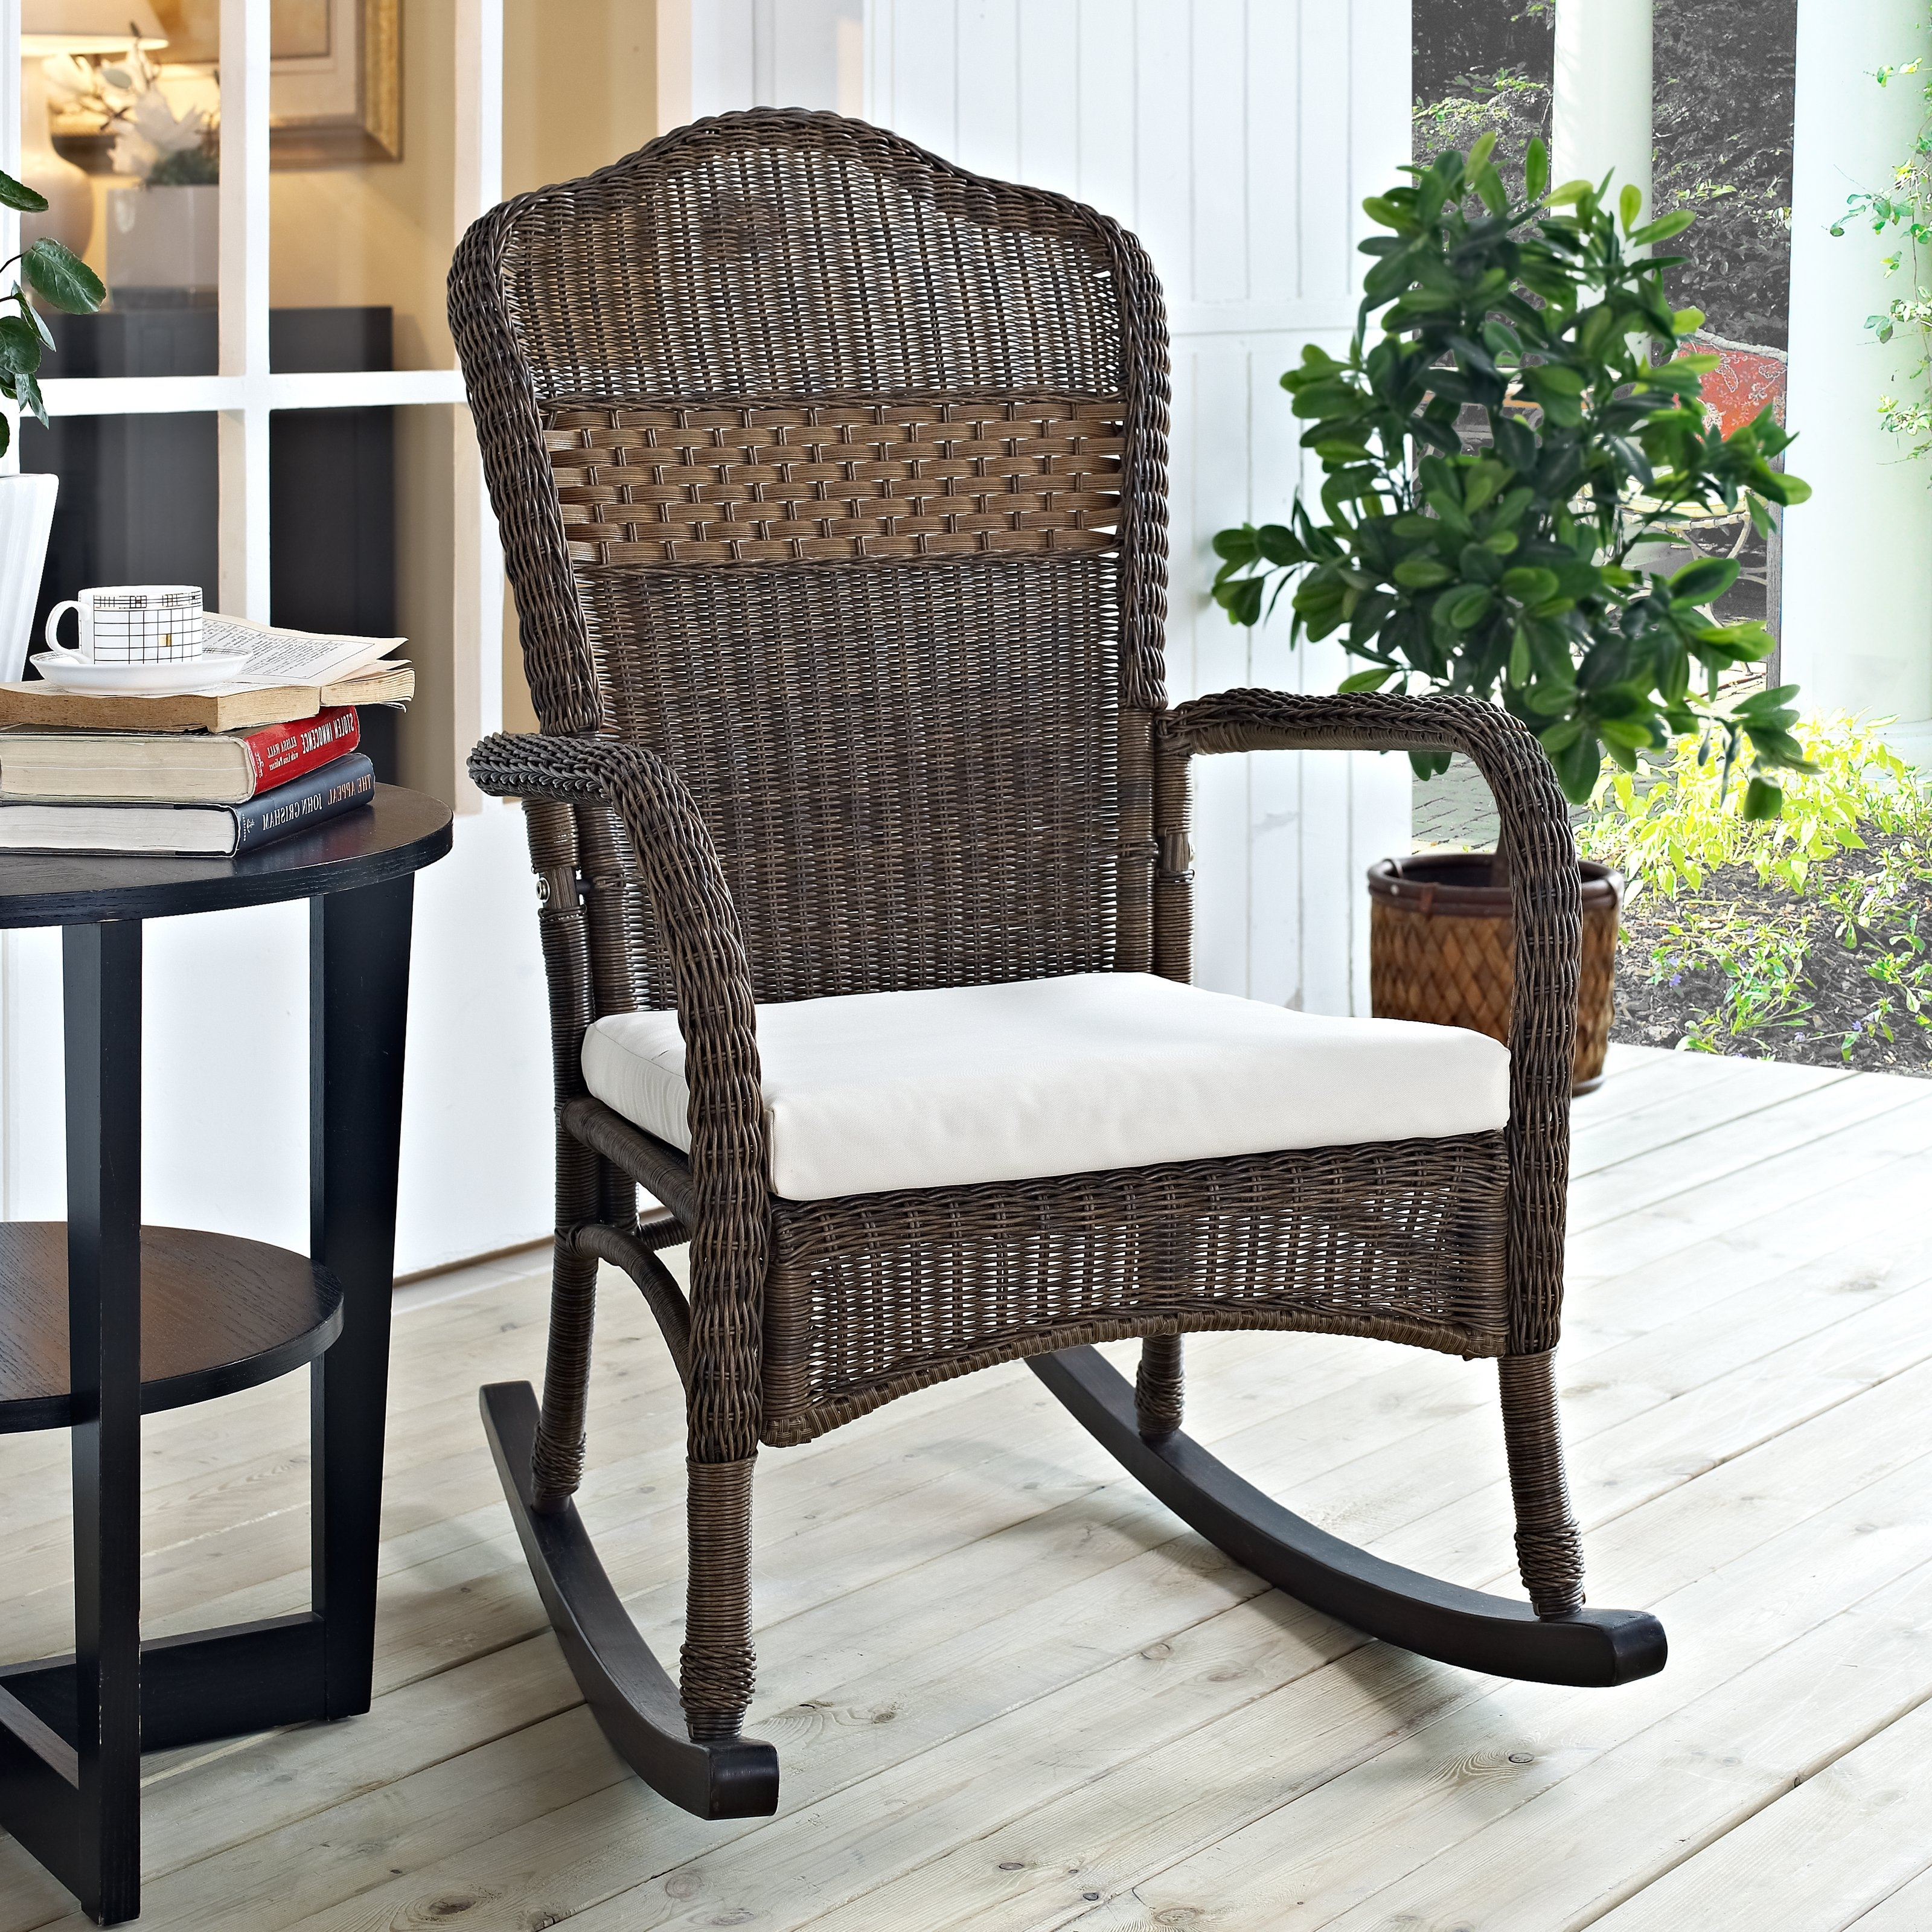 Magnificent Wicker Outdoor Rocking Chair 3 Master Cwr368 With Regard To Newest Outside Rocking Chair Sets (View 5 of 20)